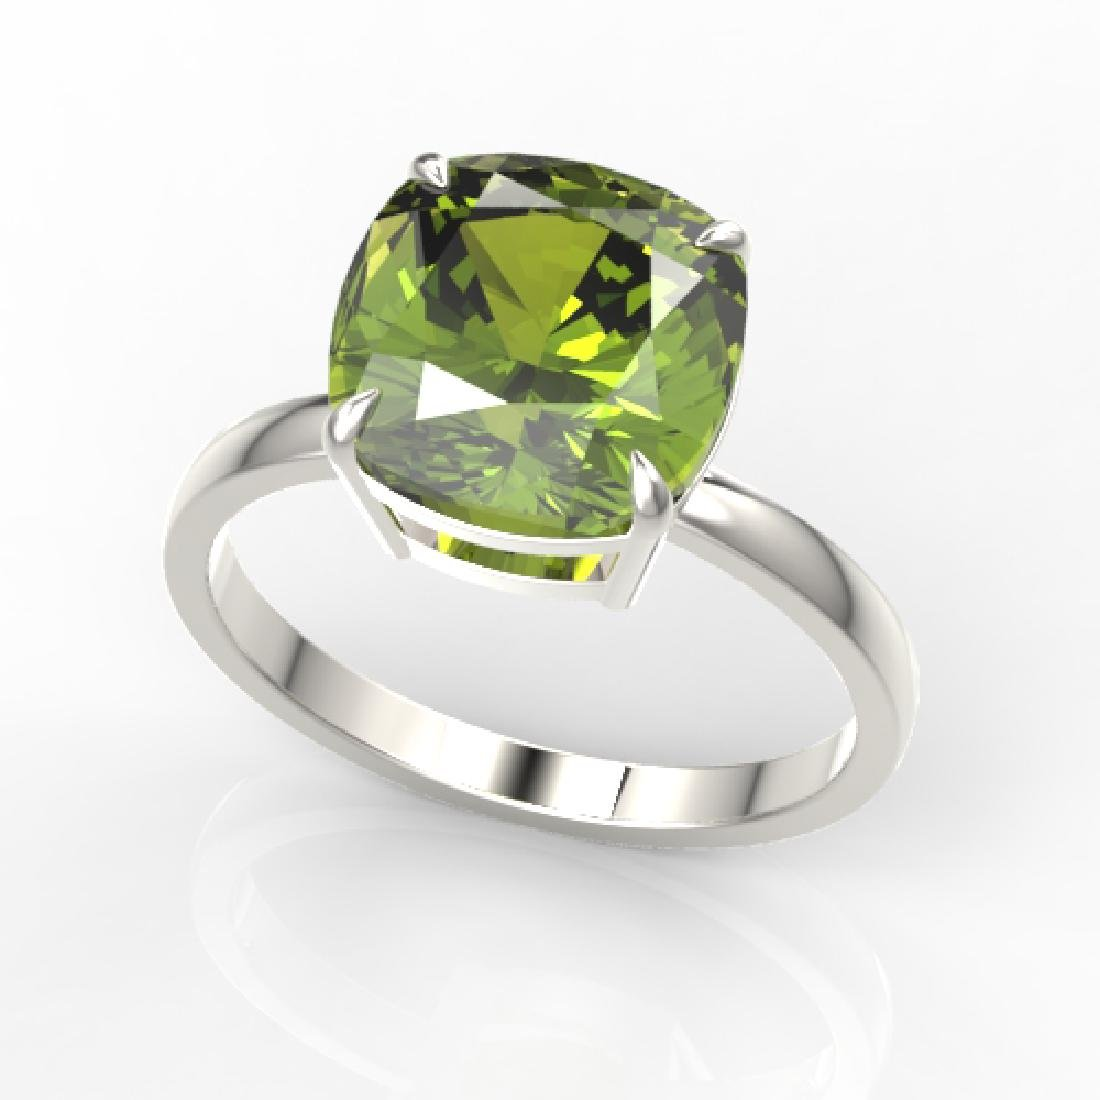 6 CTW Cushion Cut Green Tourmaline Designer Solitaire - 2